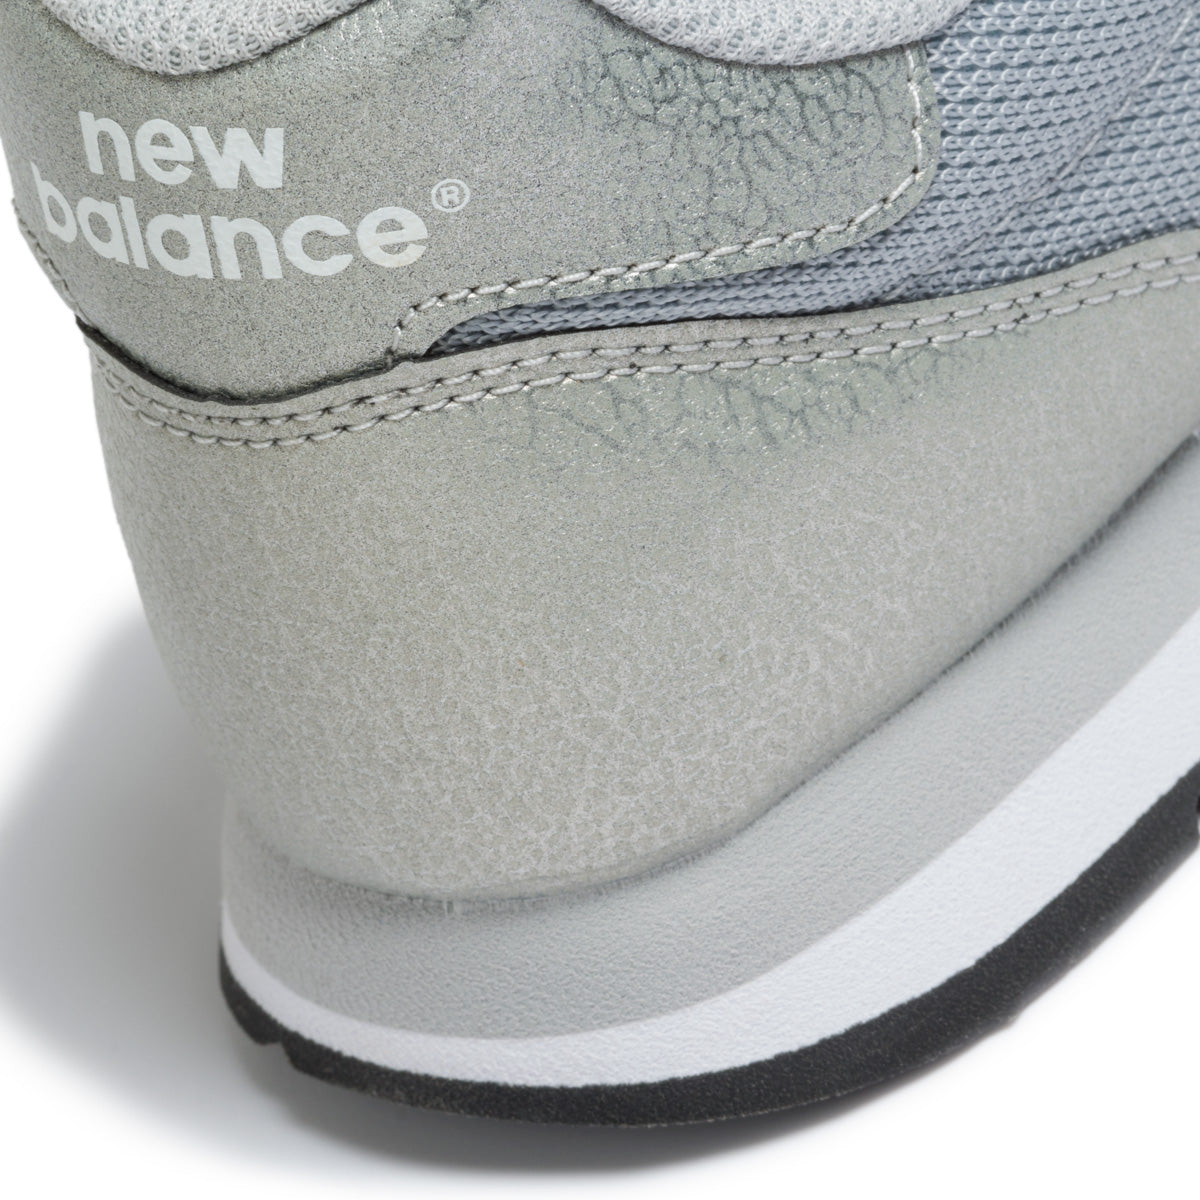 Sneakers New Balance 500